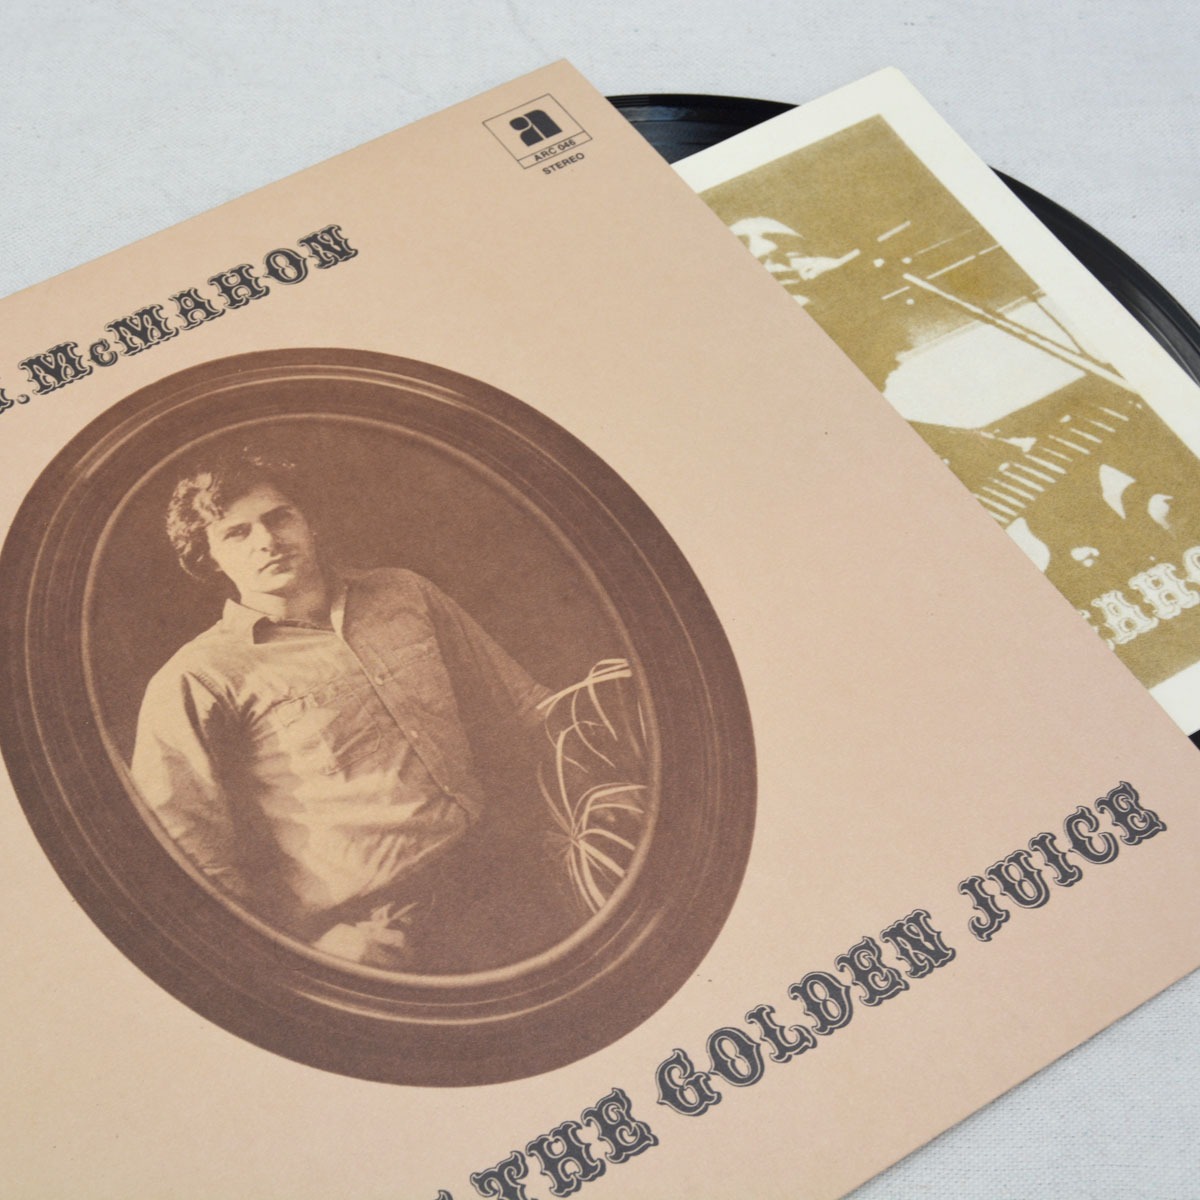 F.J. McMahon - Spirit of the Golden Juice LP booklet